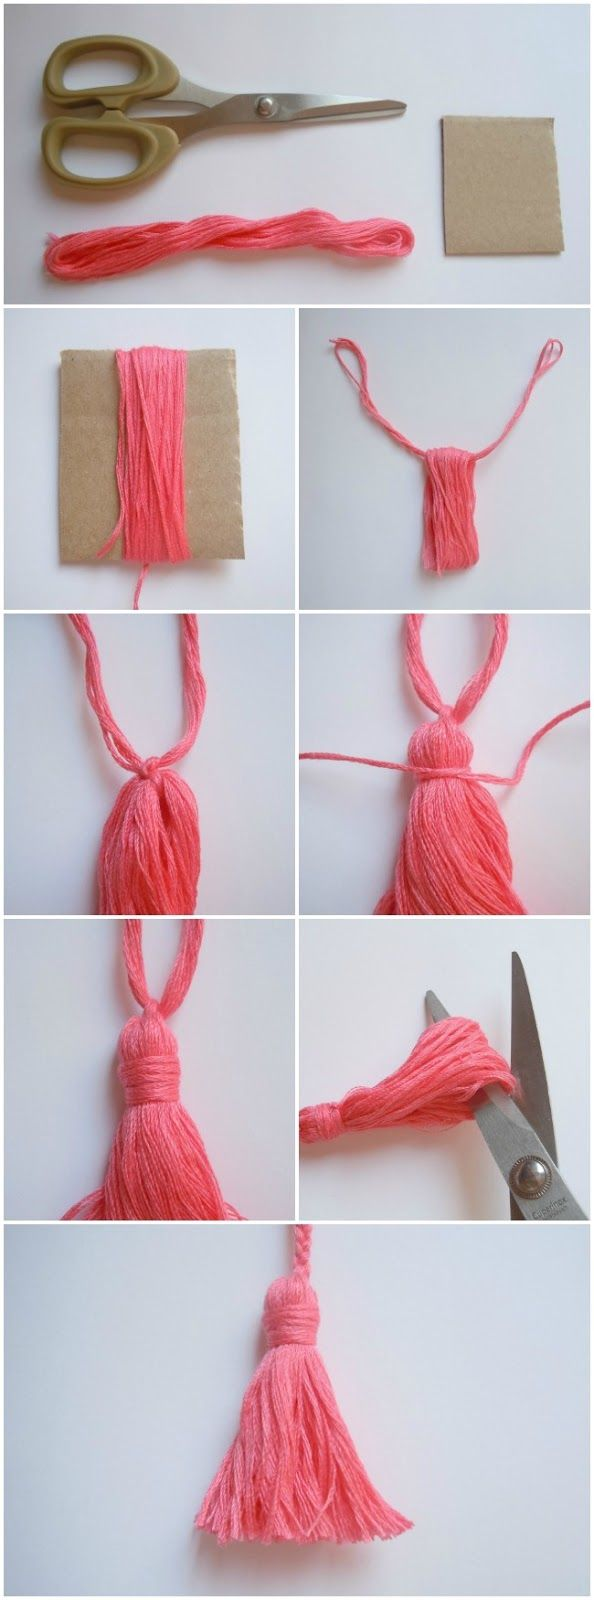 HOW TO MAKE TASSELS.